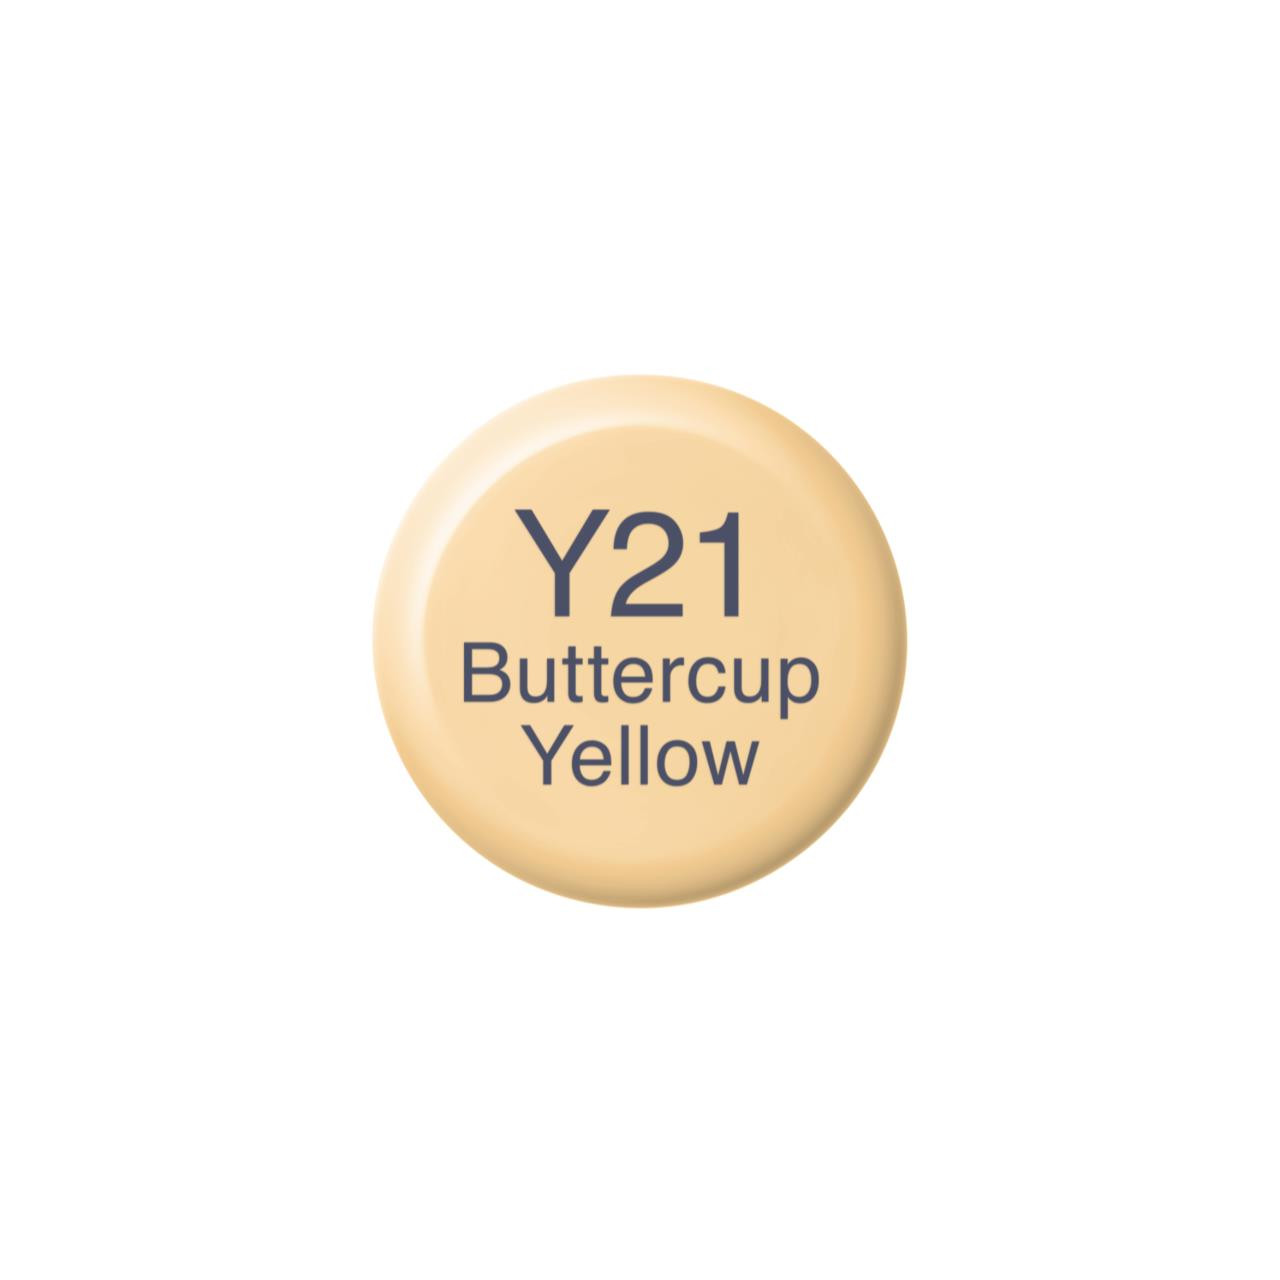 Y21 Buttercup Yellow, Copic Ink - 4511338058268